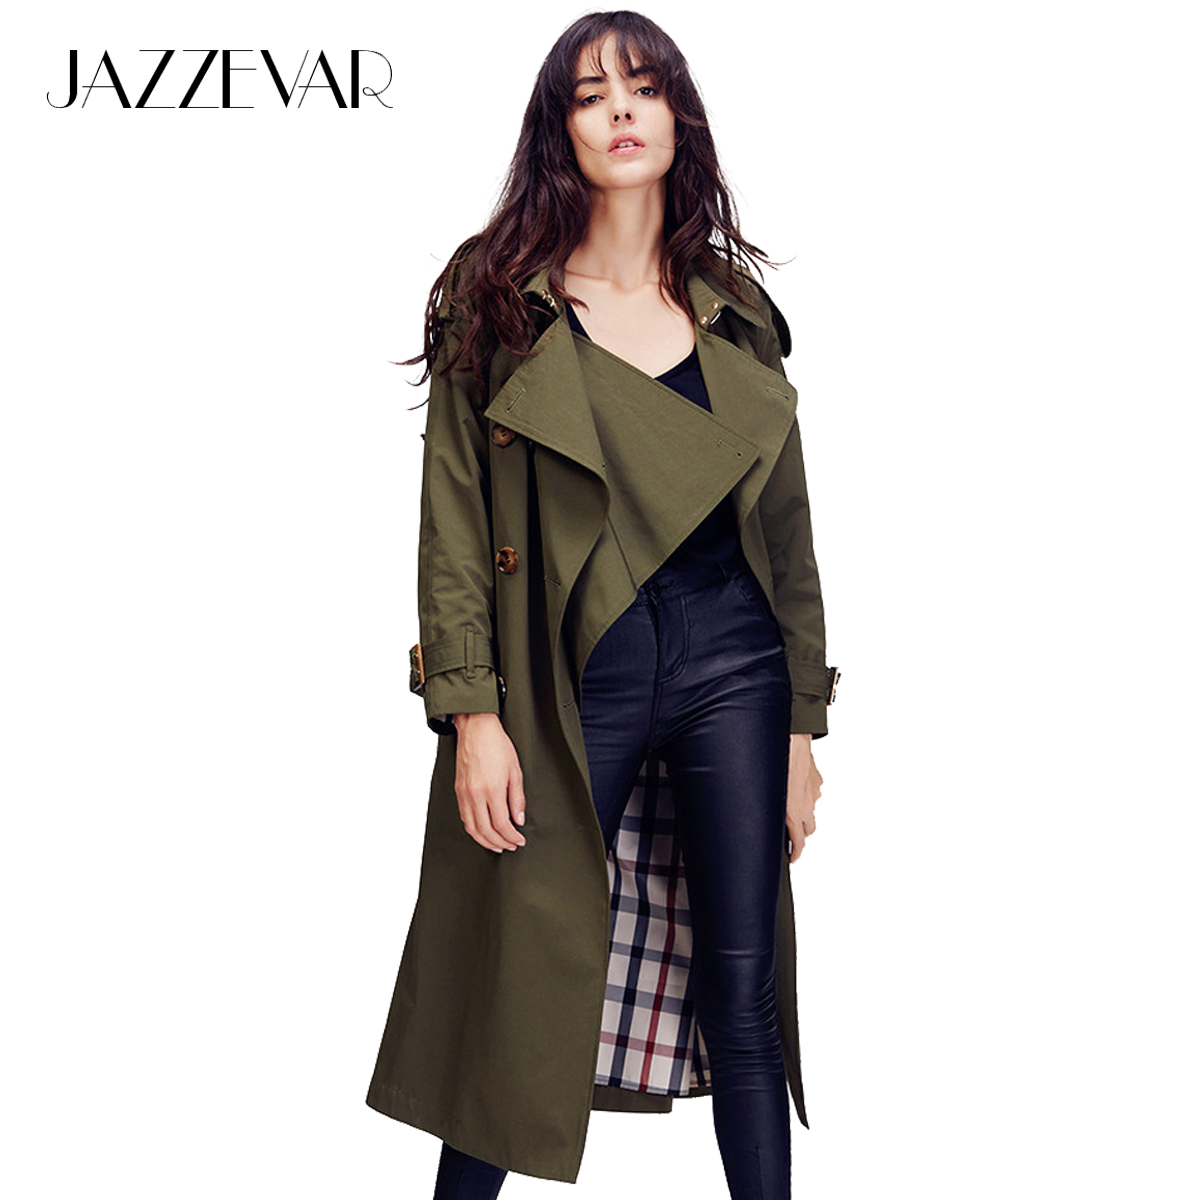 JAZZEVAR 2019 Autumn New High Fashion Brand Women s Double Breasted trench coat Wasserfall Collar outwear